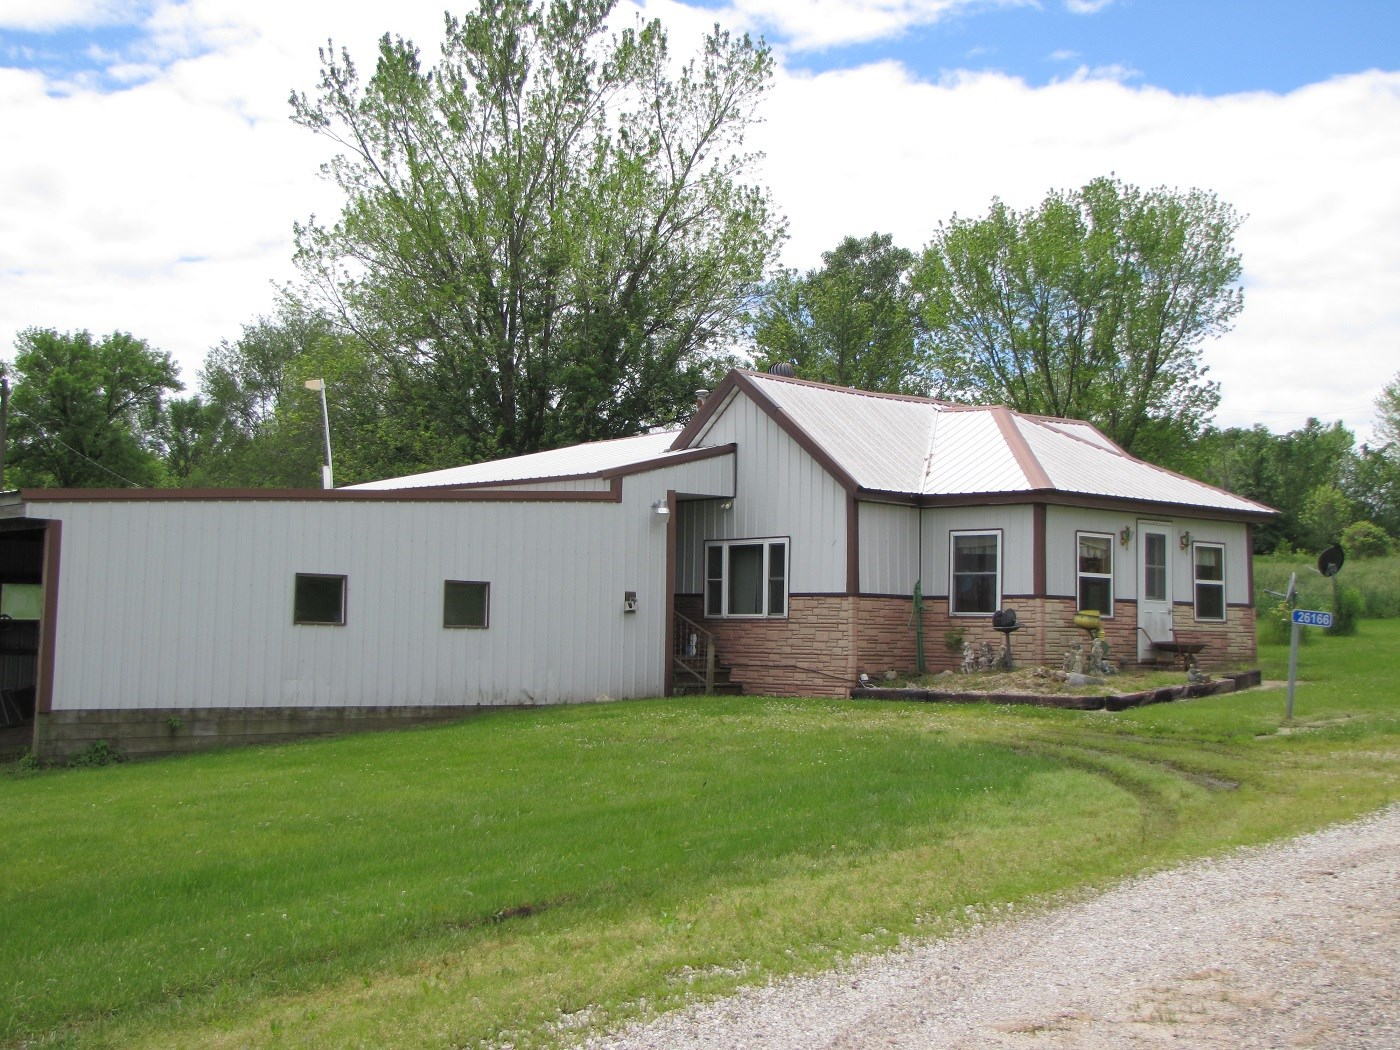 MO SMALL ACREAGE AND HOME FOR SALE, LARGE LOT & HOME MO